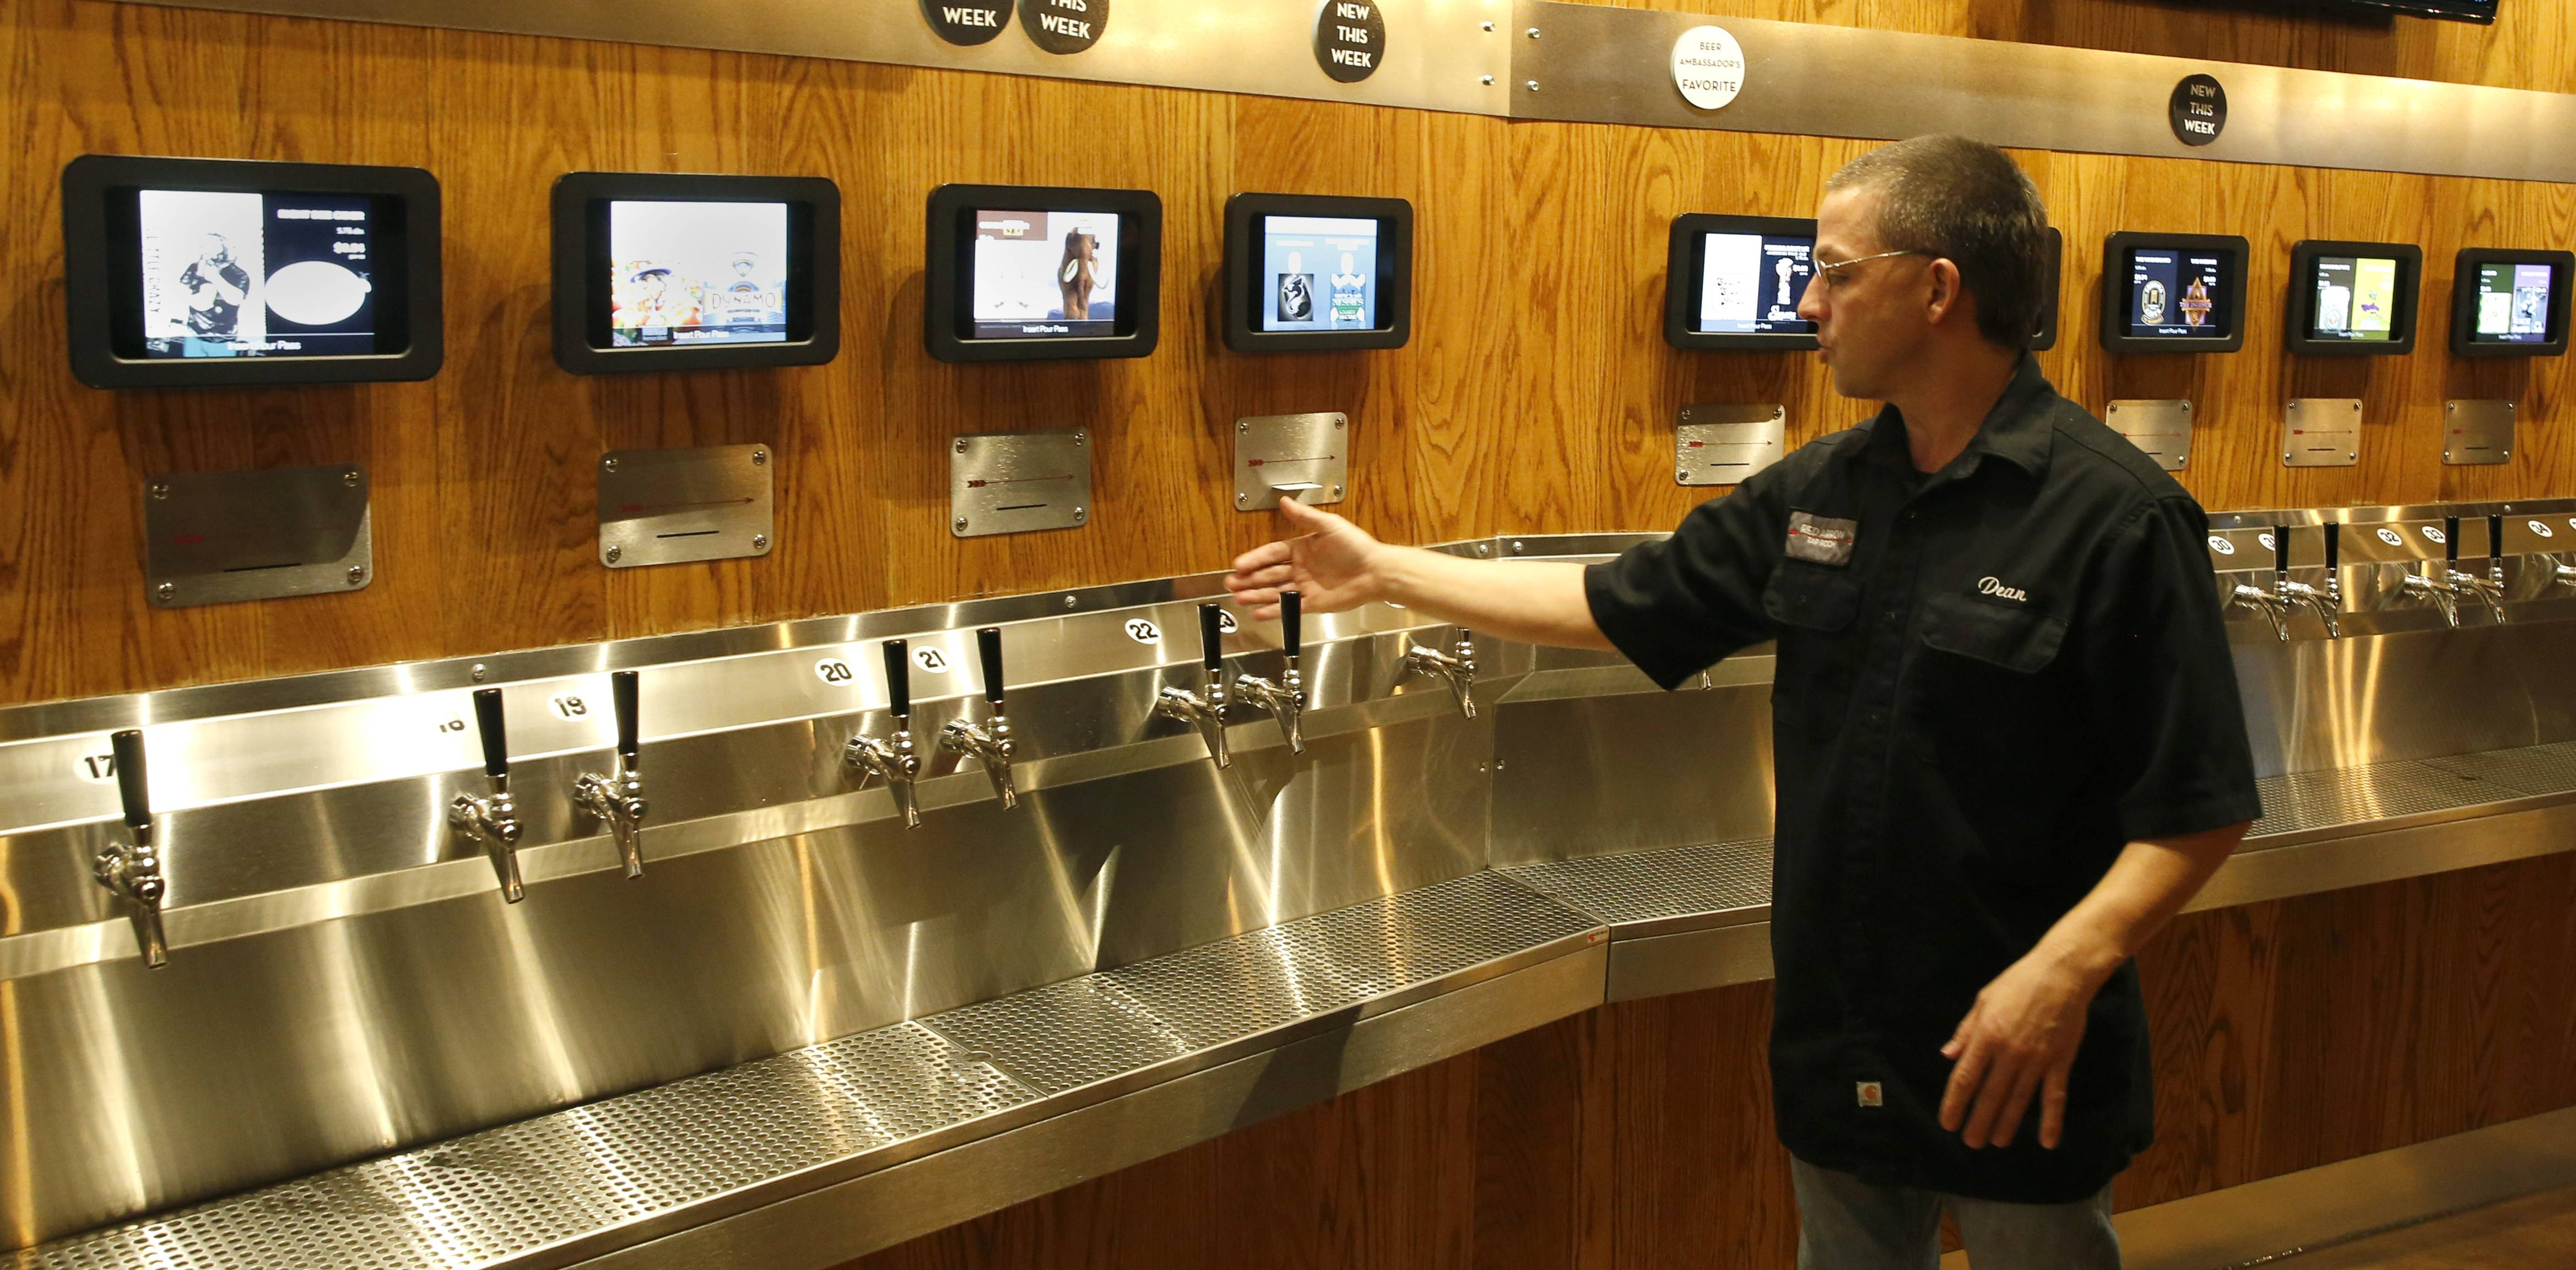 Naperville considers new regulations on self-service beer, wine taps